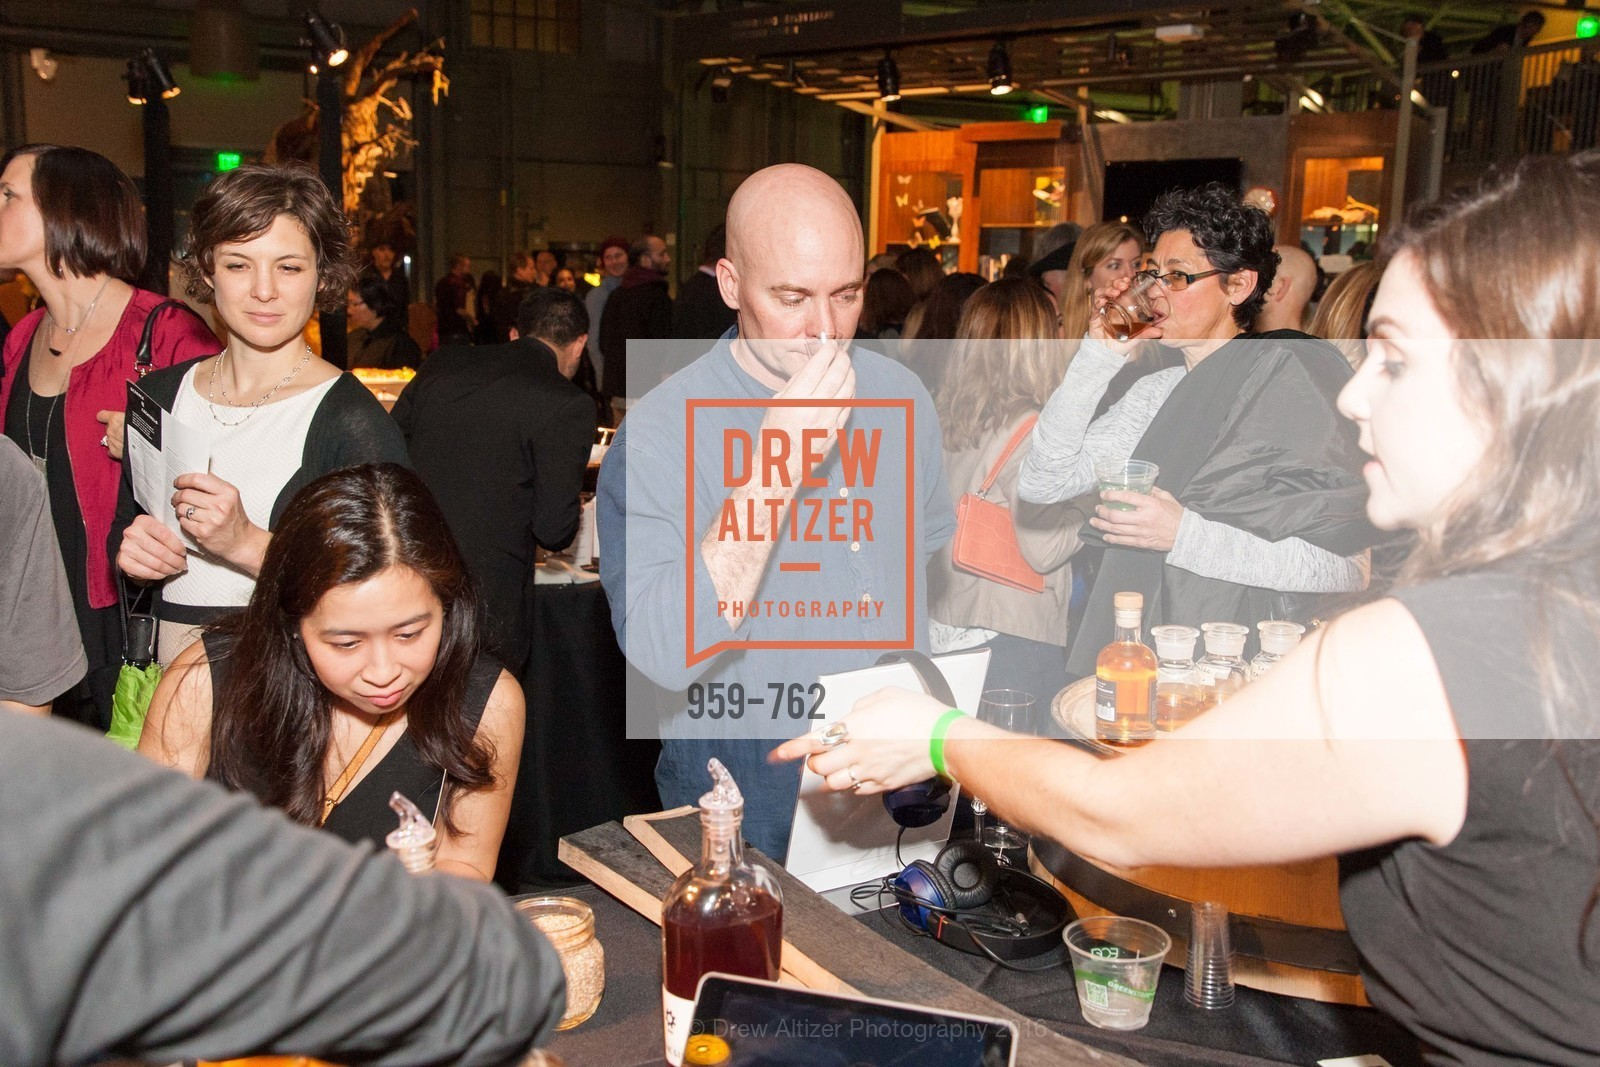 Extras, The 2016 Exploratorium Science of Cocktails, January 22nd, 2016, Photo,Drew Altizer, Drew Altizer Photography, full-service agency, private events, San Francisco photographer, photographer california